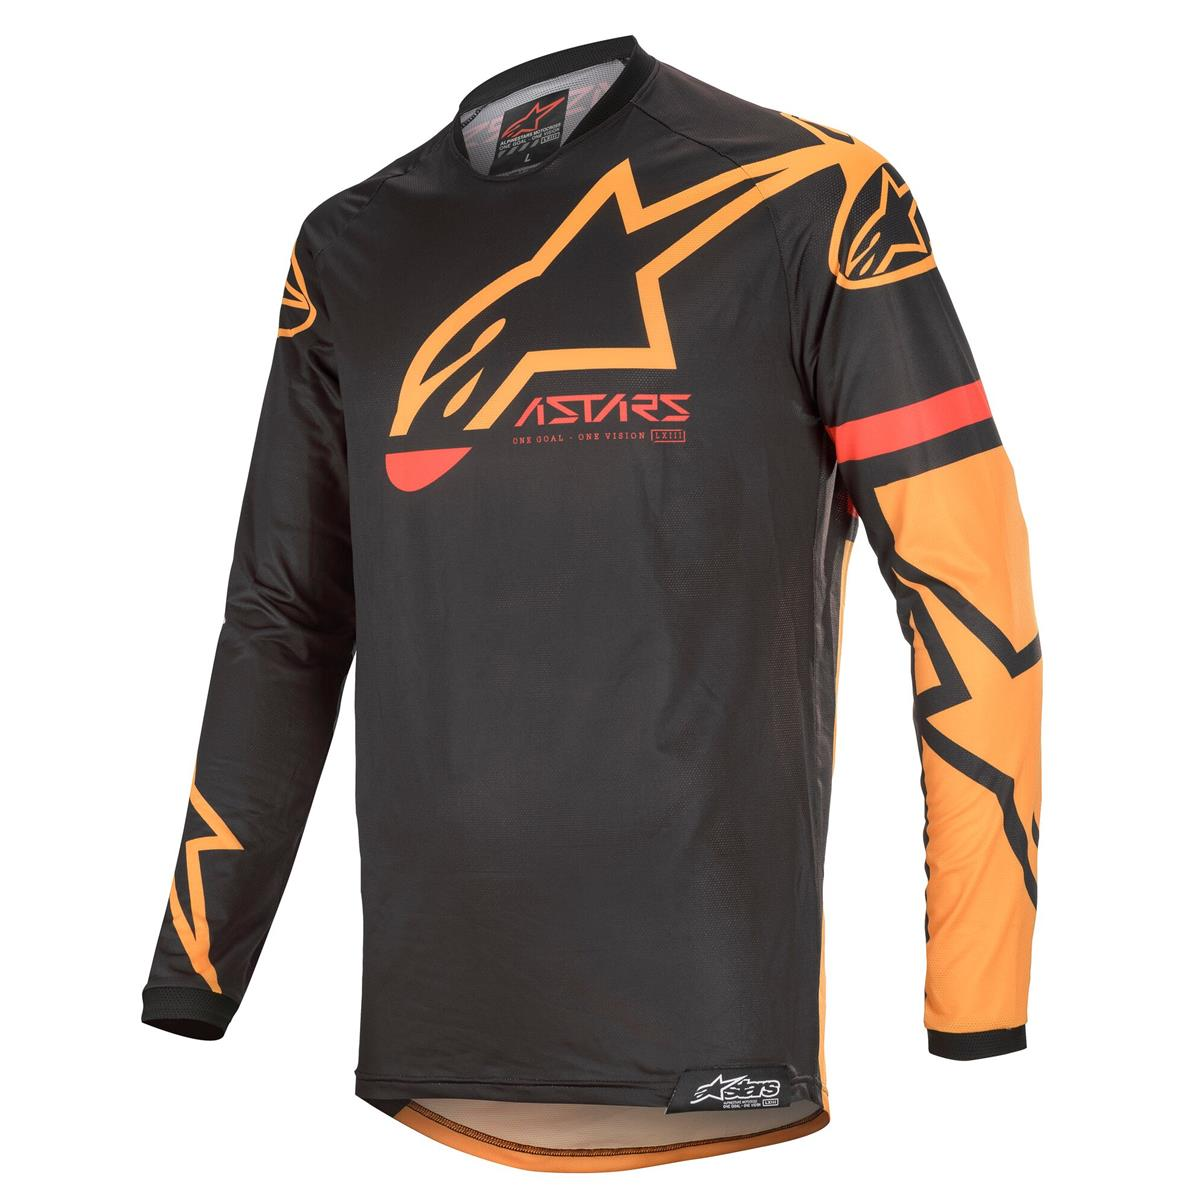 Alpinestars Jersey Racer Tech Compass - Schwarz/Orange